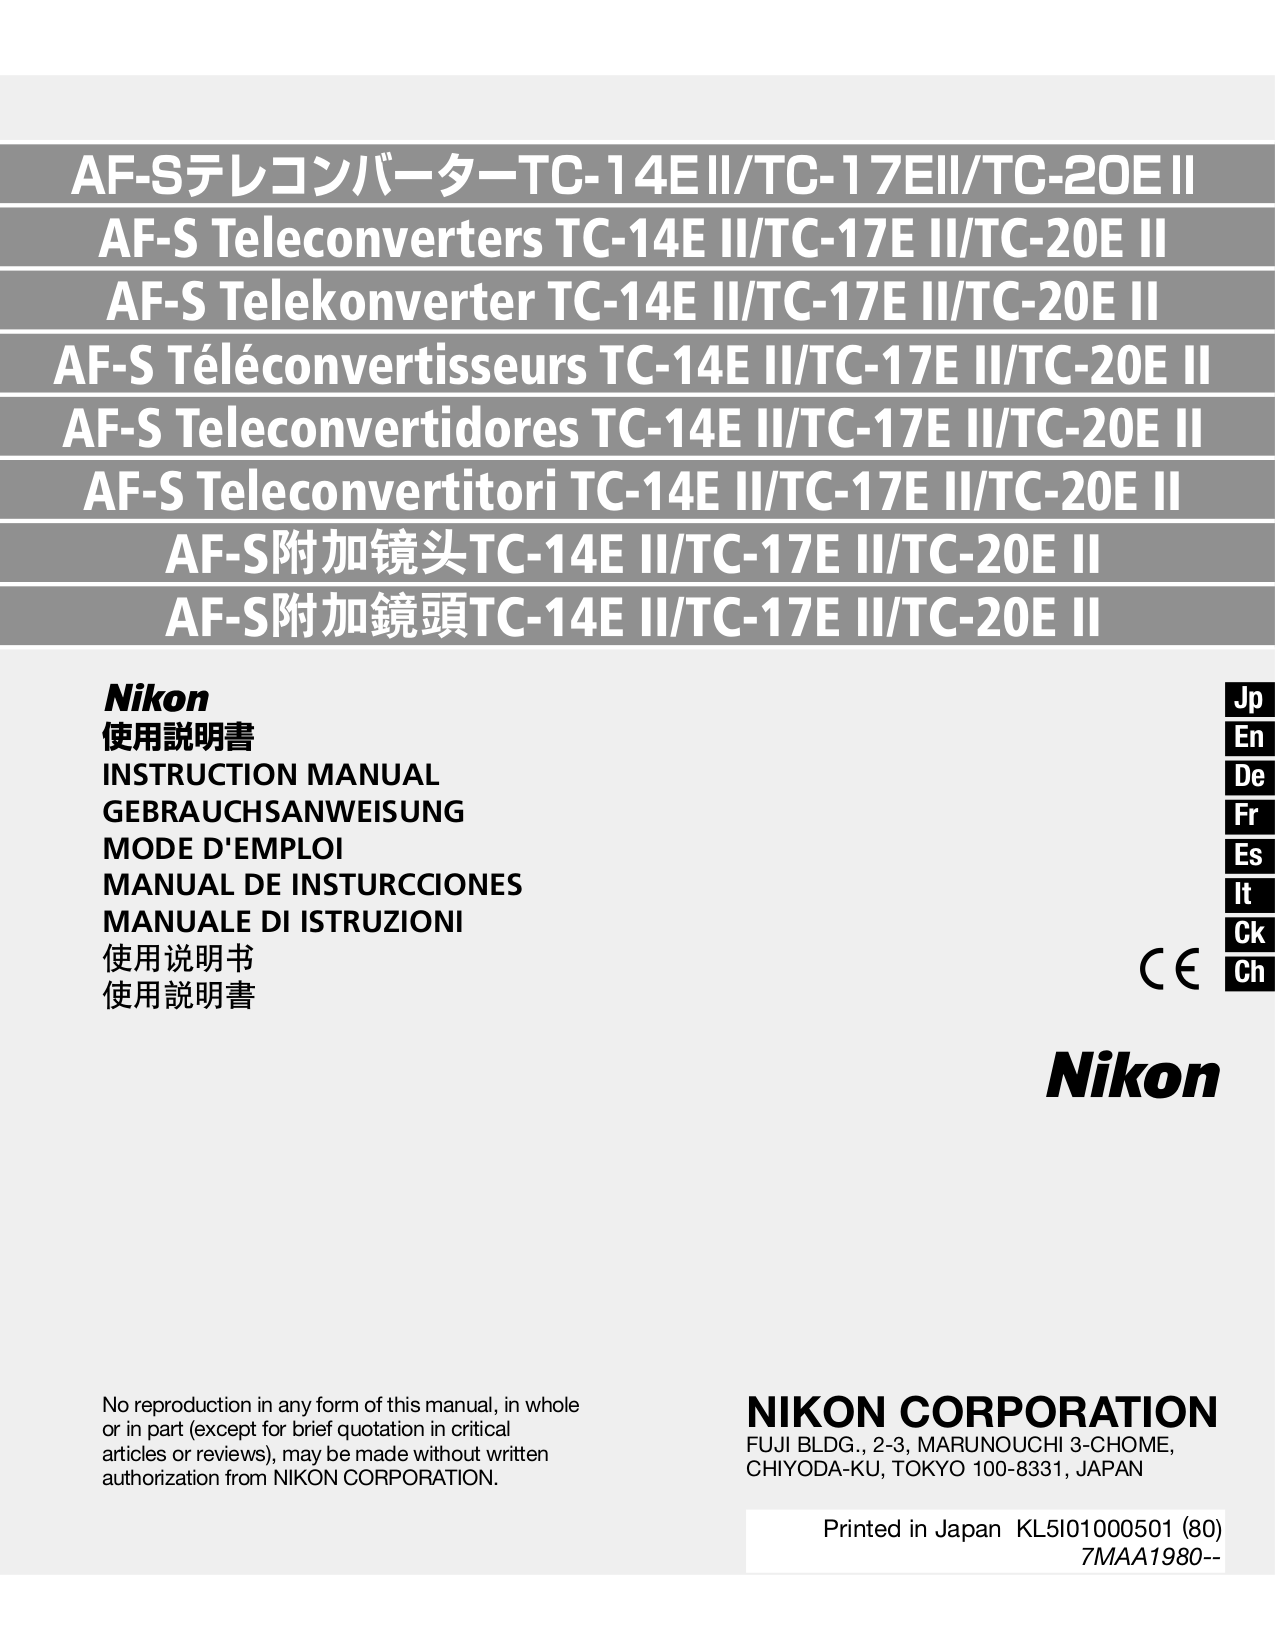 pdf for Nikon Other TC-20E II Camera Teleconverters manual